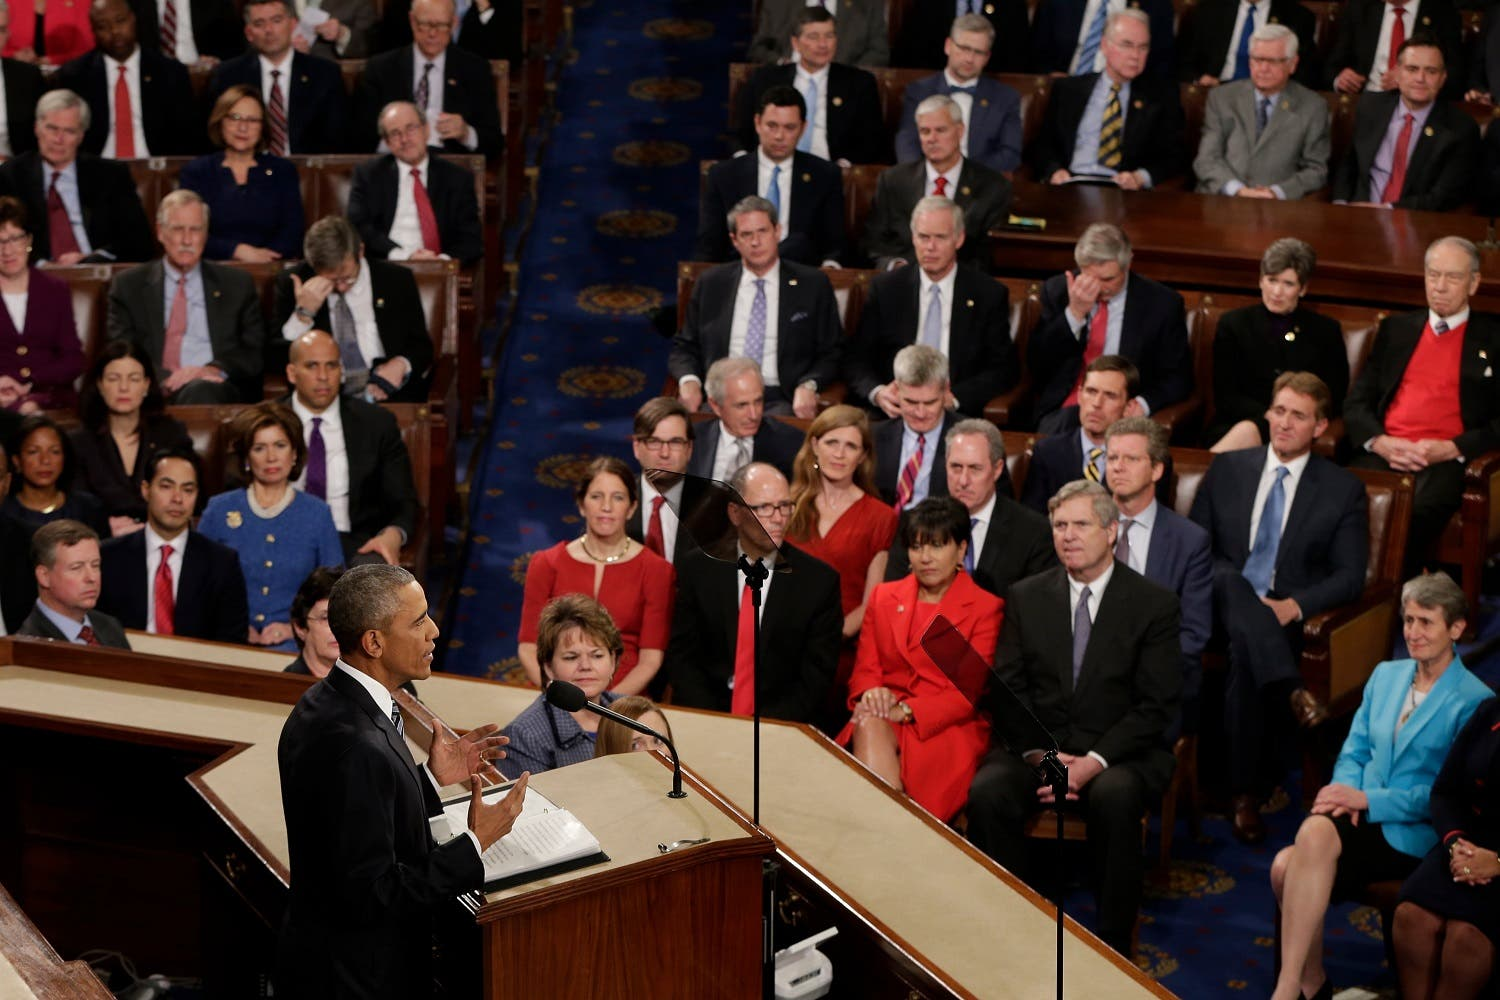 President Barack Obama gives his State of the Union address before a joint session of Congress on Capitol Hill in Washington. (AP)